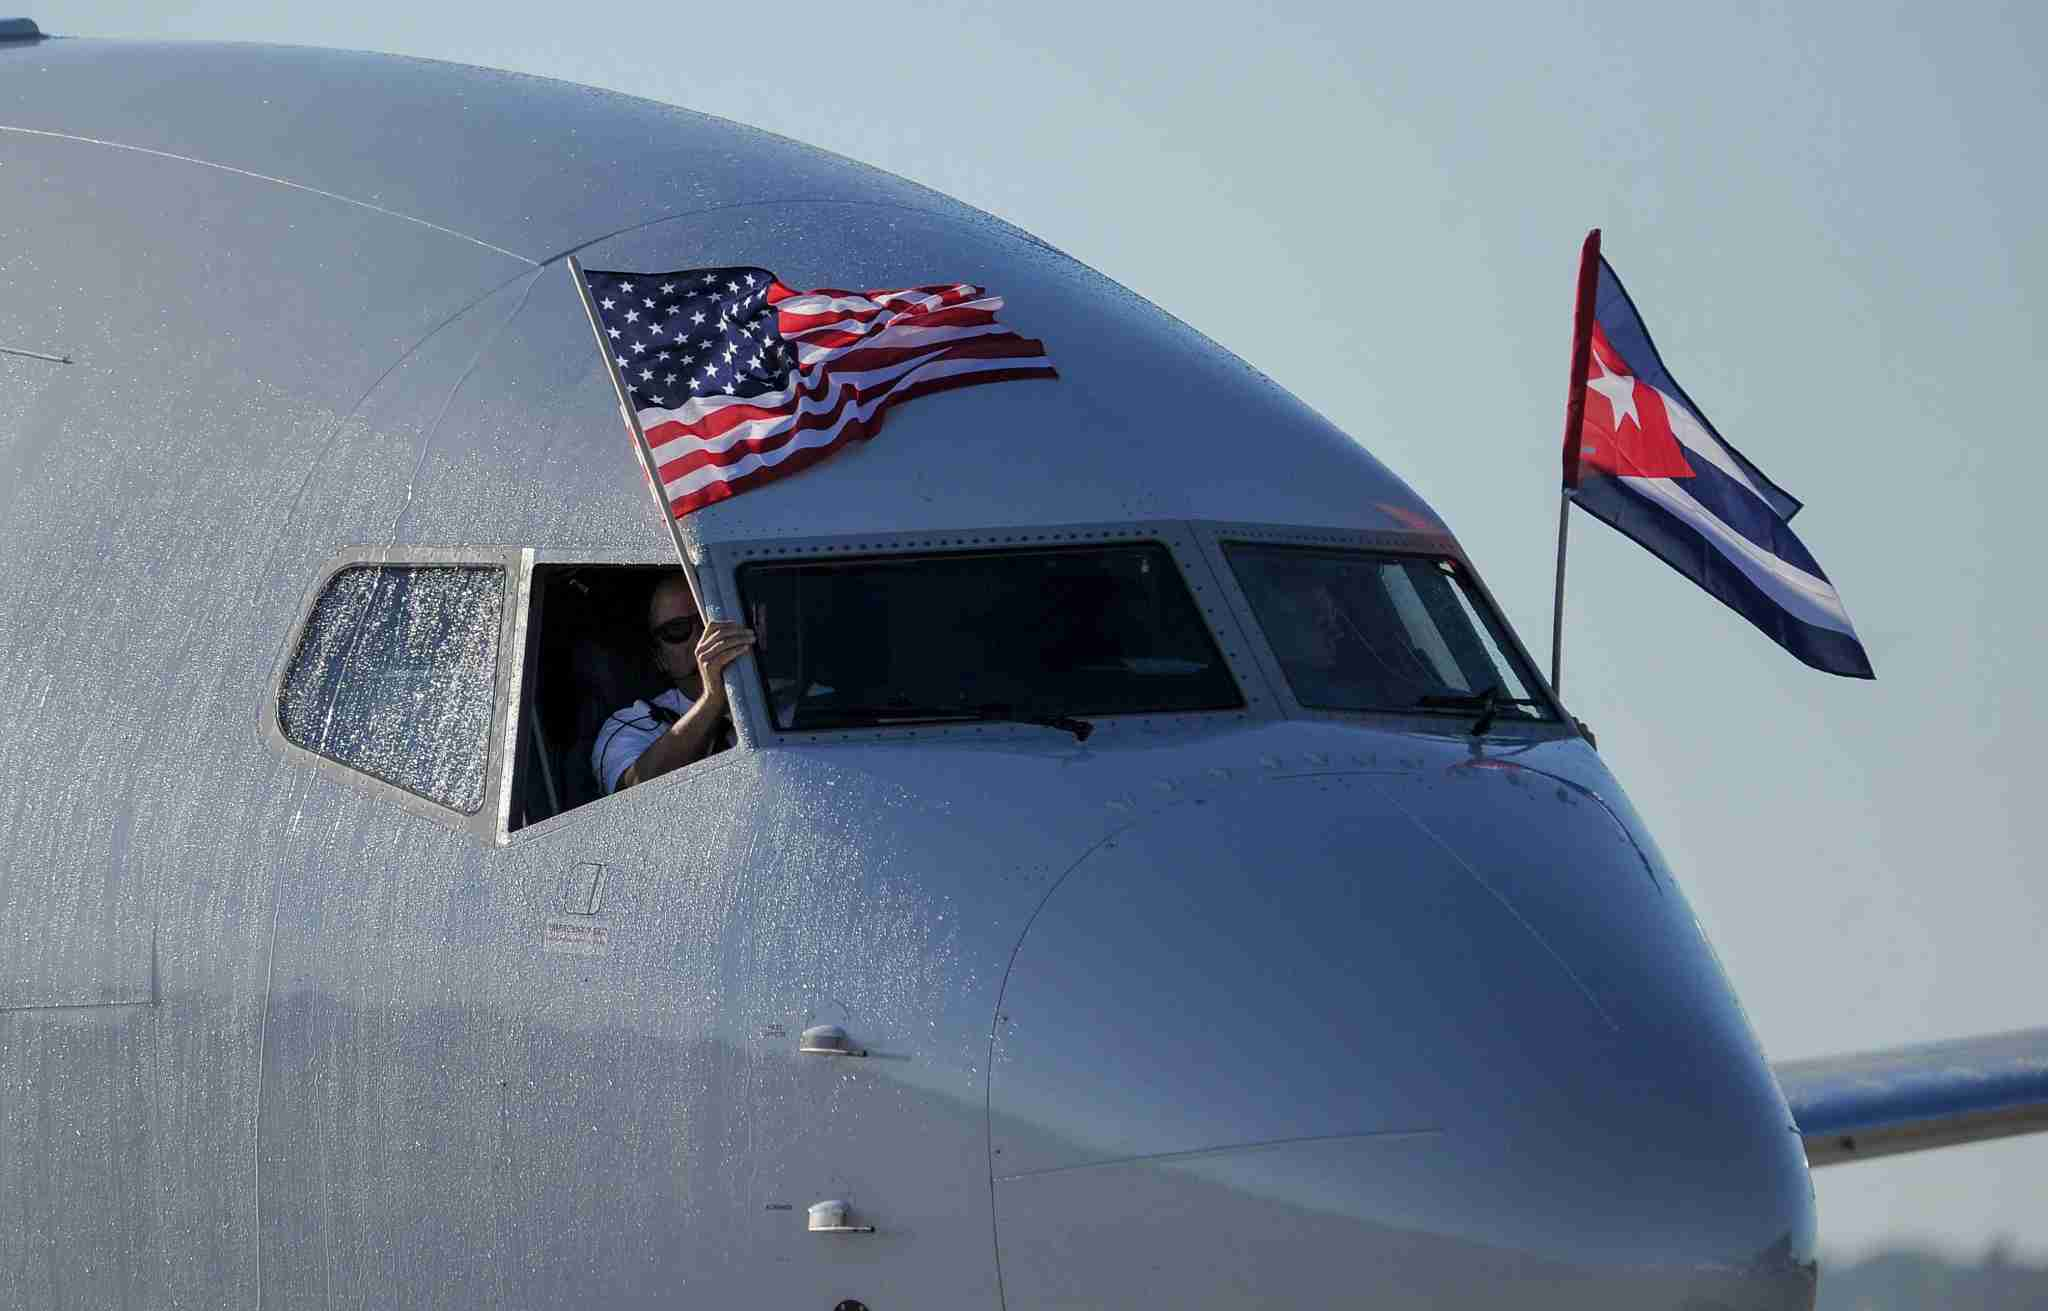 An American Airlines plane fluttering U.S. and Cuban flags is seen upon arrival at Jose Marti International Airport on Nov. 28, 2016, becoming the first Miami-Havana commercial flight in 50 years. (Photo by Yamil Lage/AFP via Getty Images)